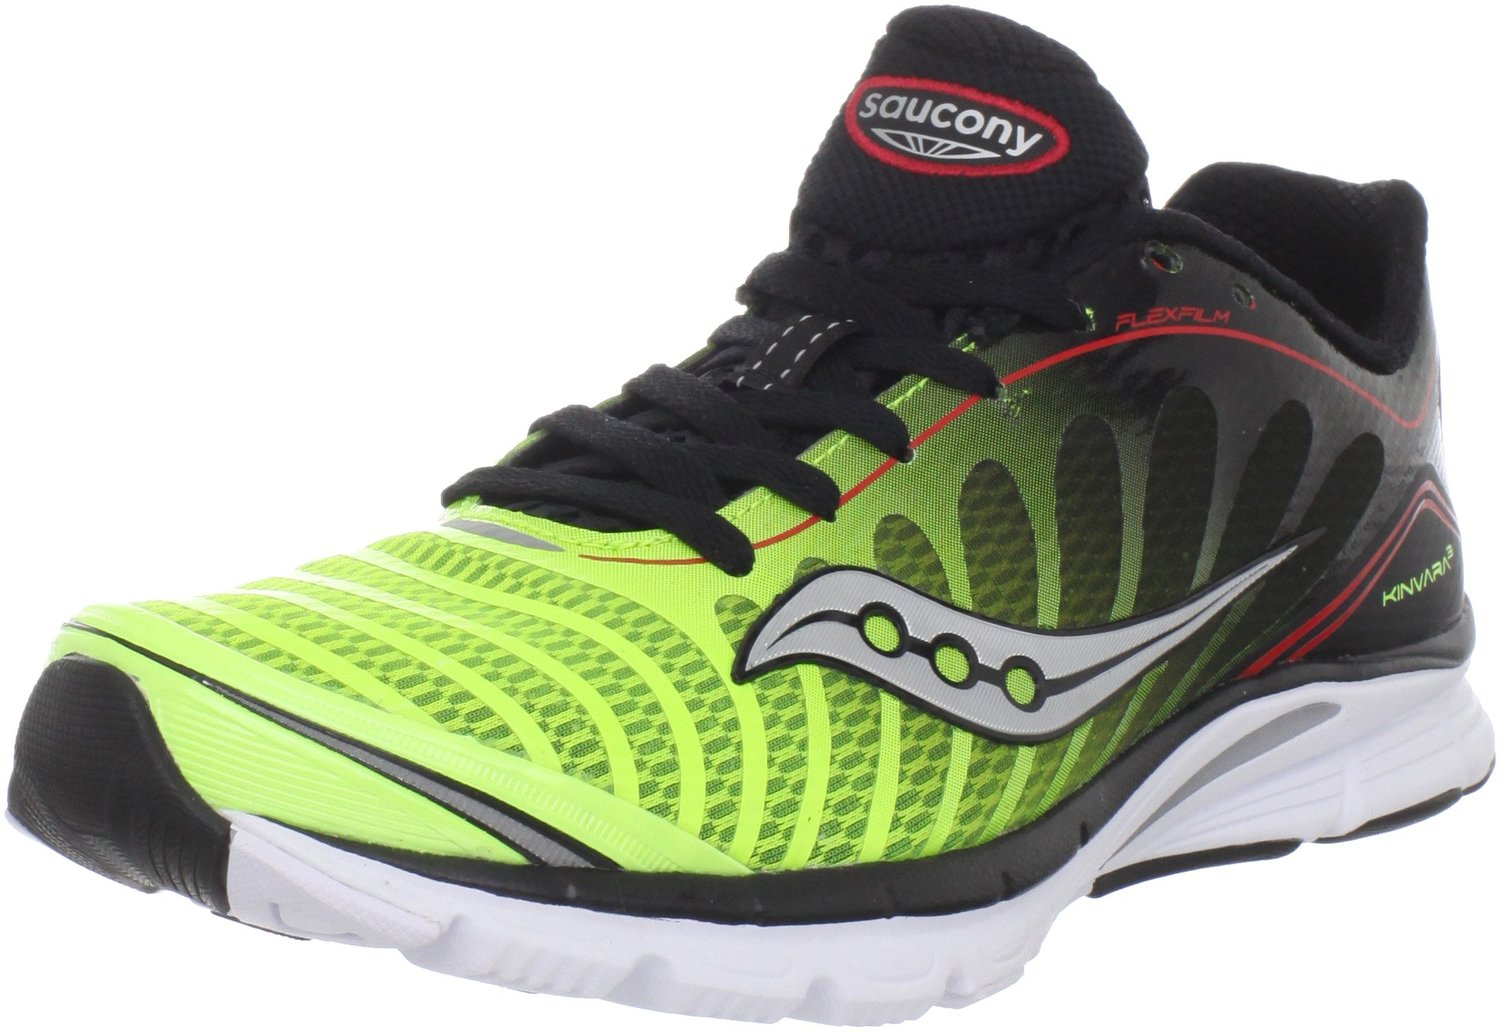 Saucony Virrata Running Shoes Mens Review